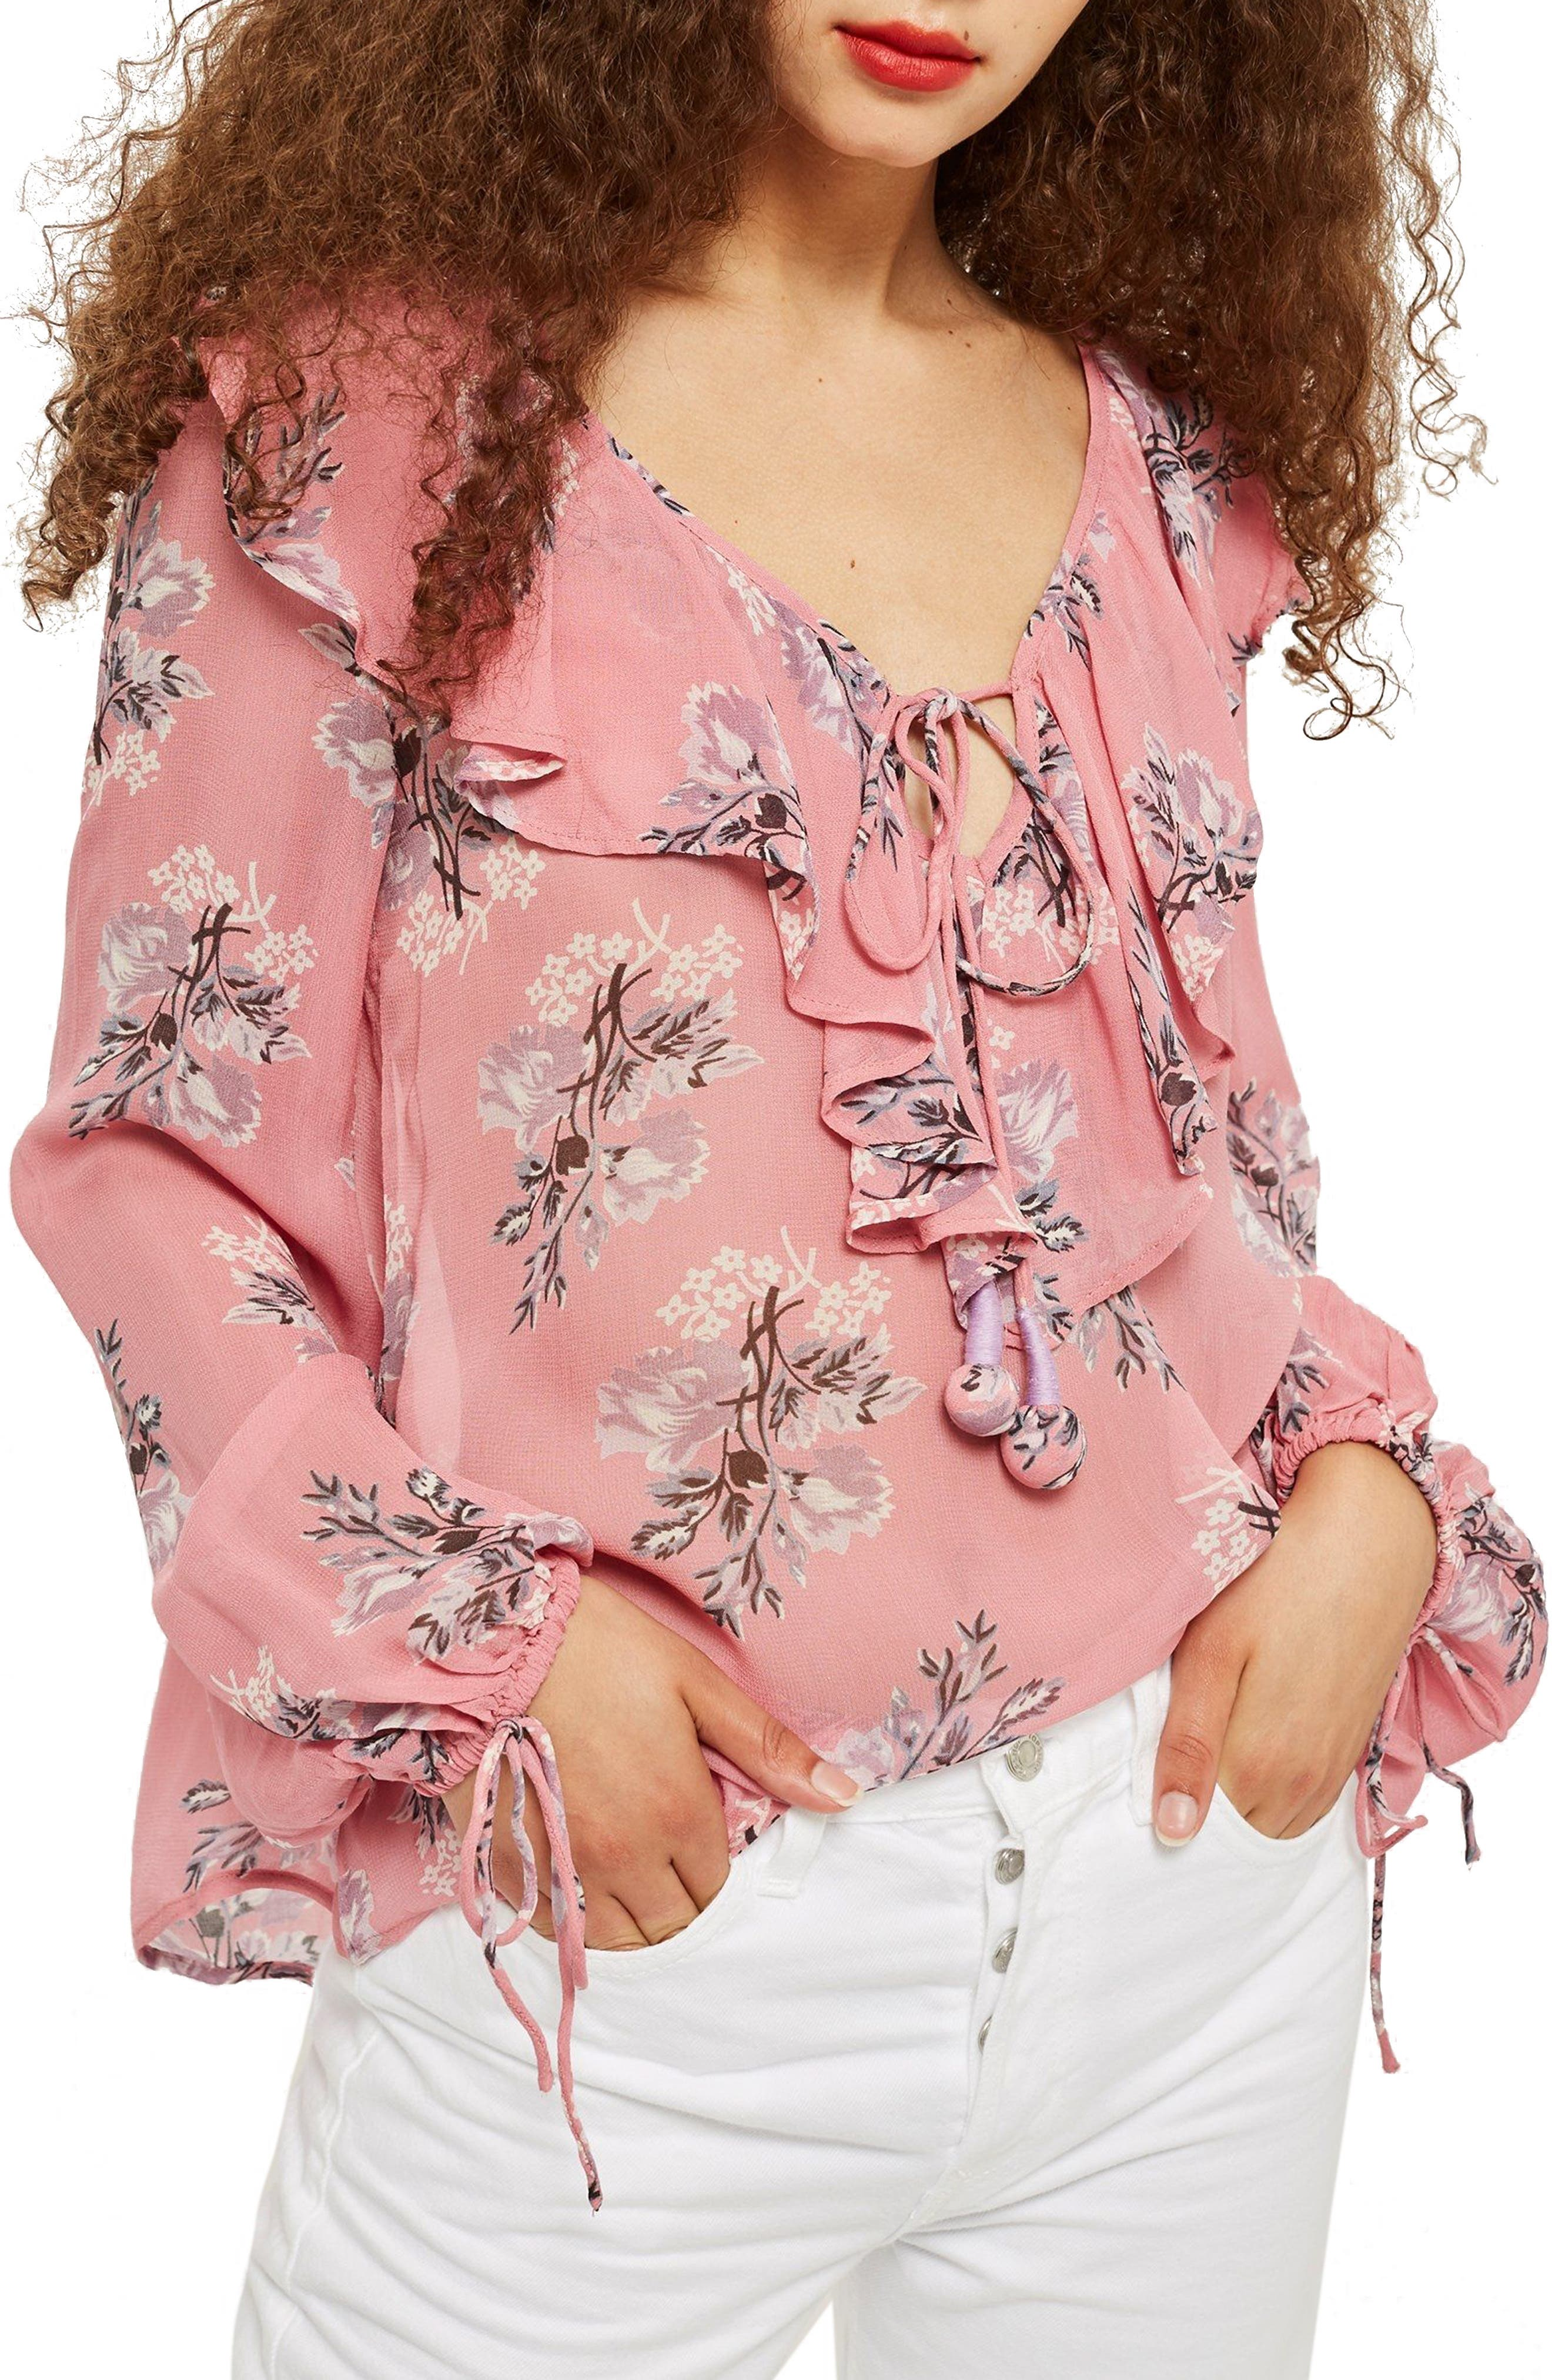 Floral Ruffle Pompom Blouse,                             Main thumbnail 1, color,                             Pink Multi